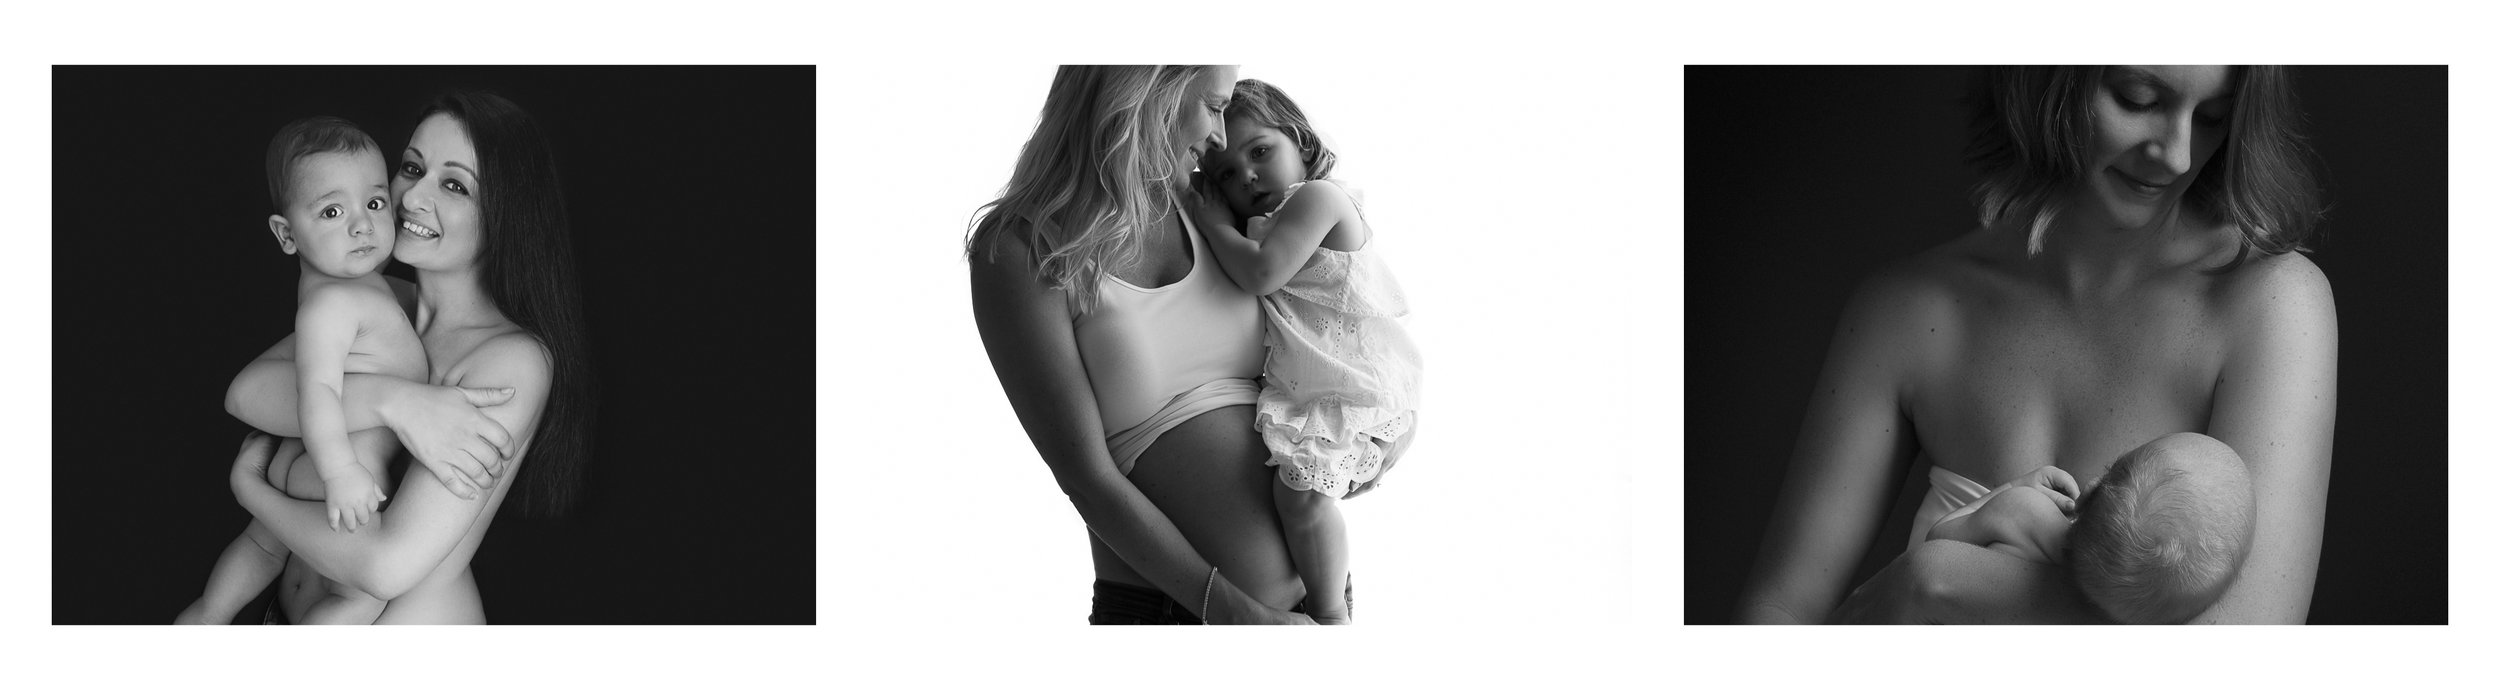 TRYPTICH Motherhood Mums Family Black and White Baby Portrait Photography Analia Paino Portrait Photography.jpg